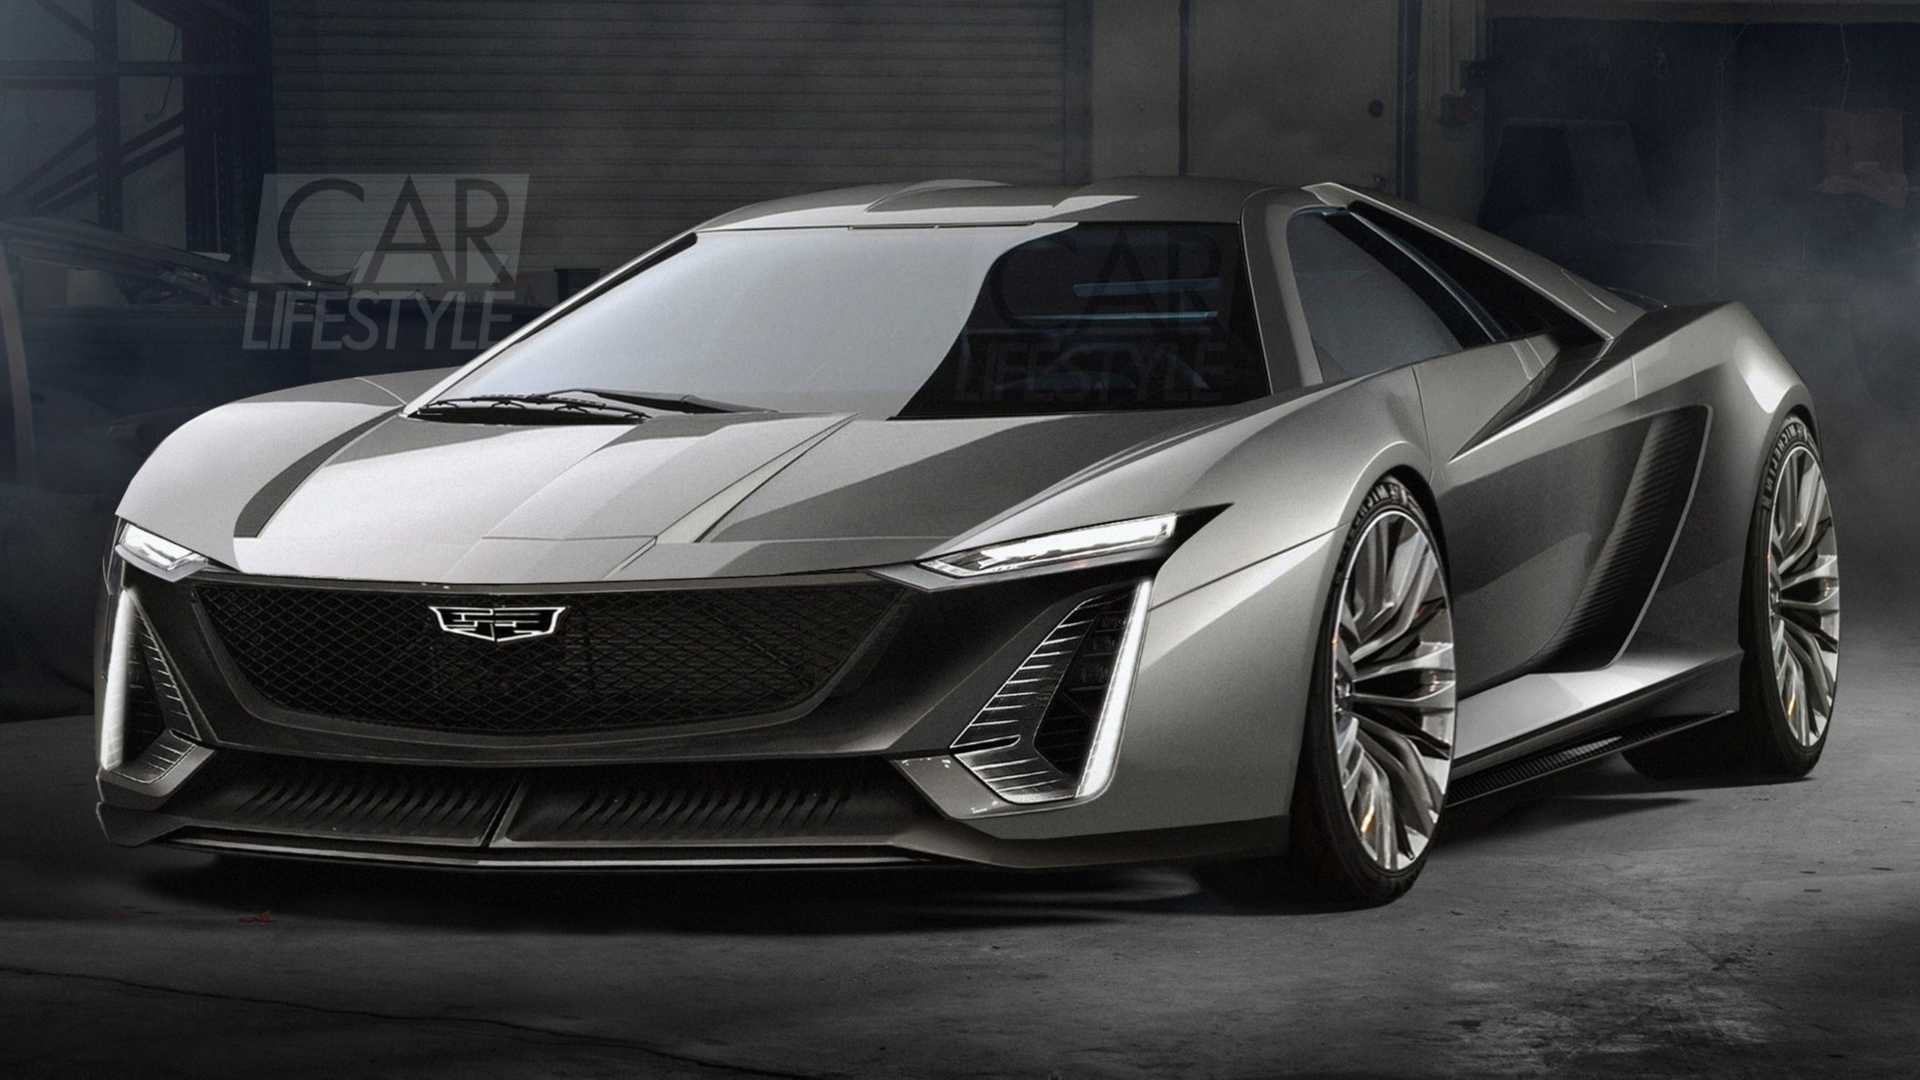 Mid-Engined Cadillac Supercar Would Be A Great C8 Companion